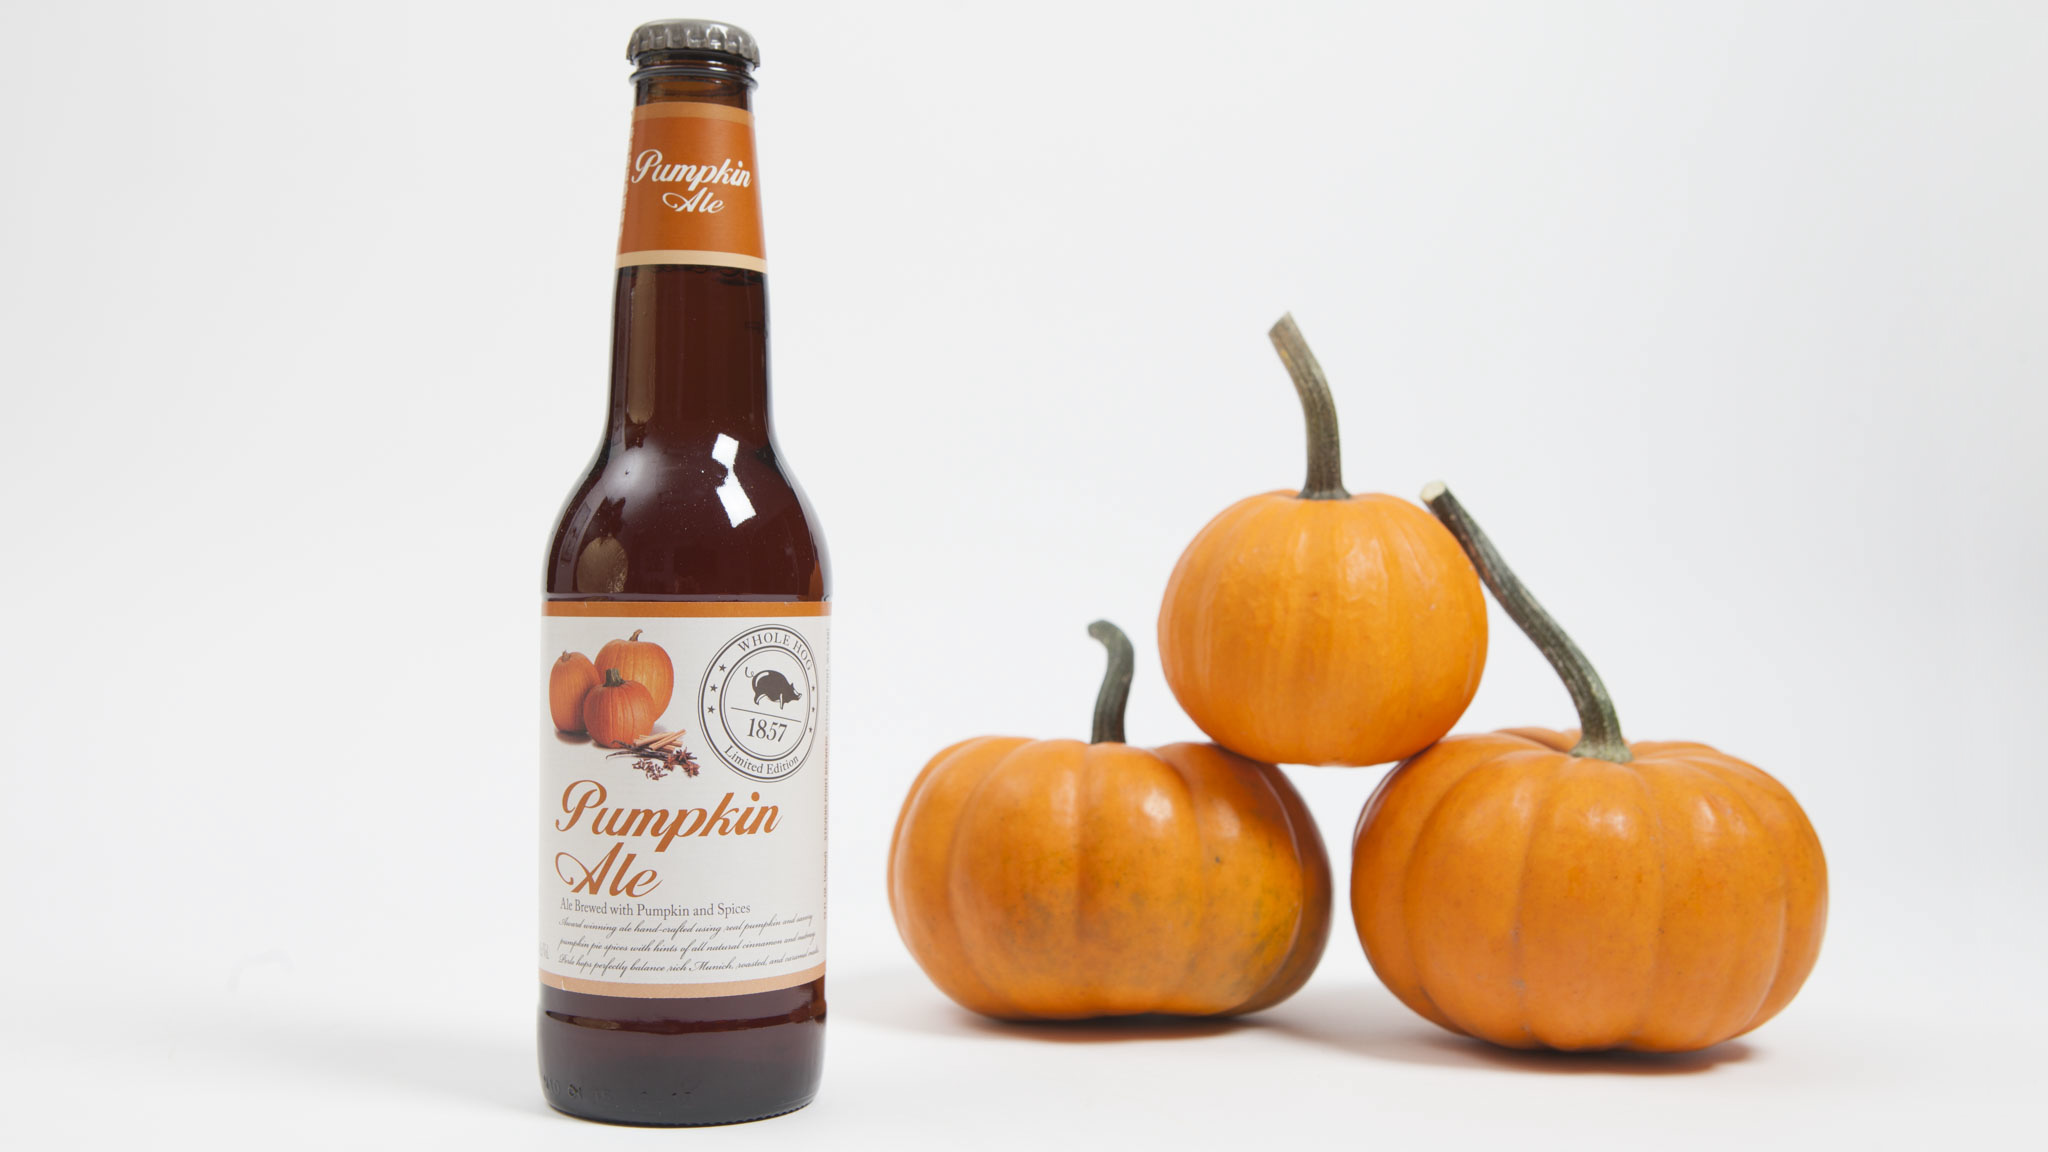 Stevens Point Whole Hog Pumpkin Ale